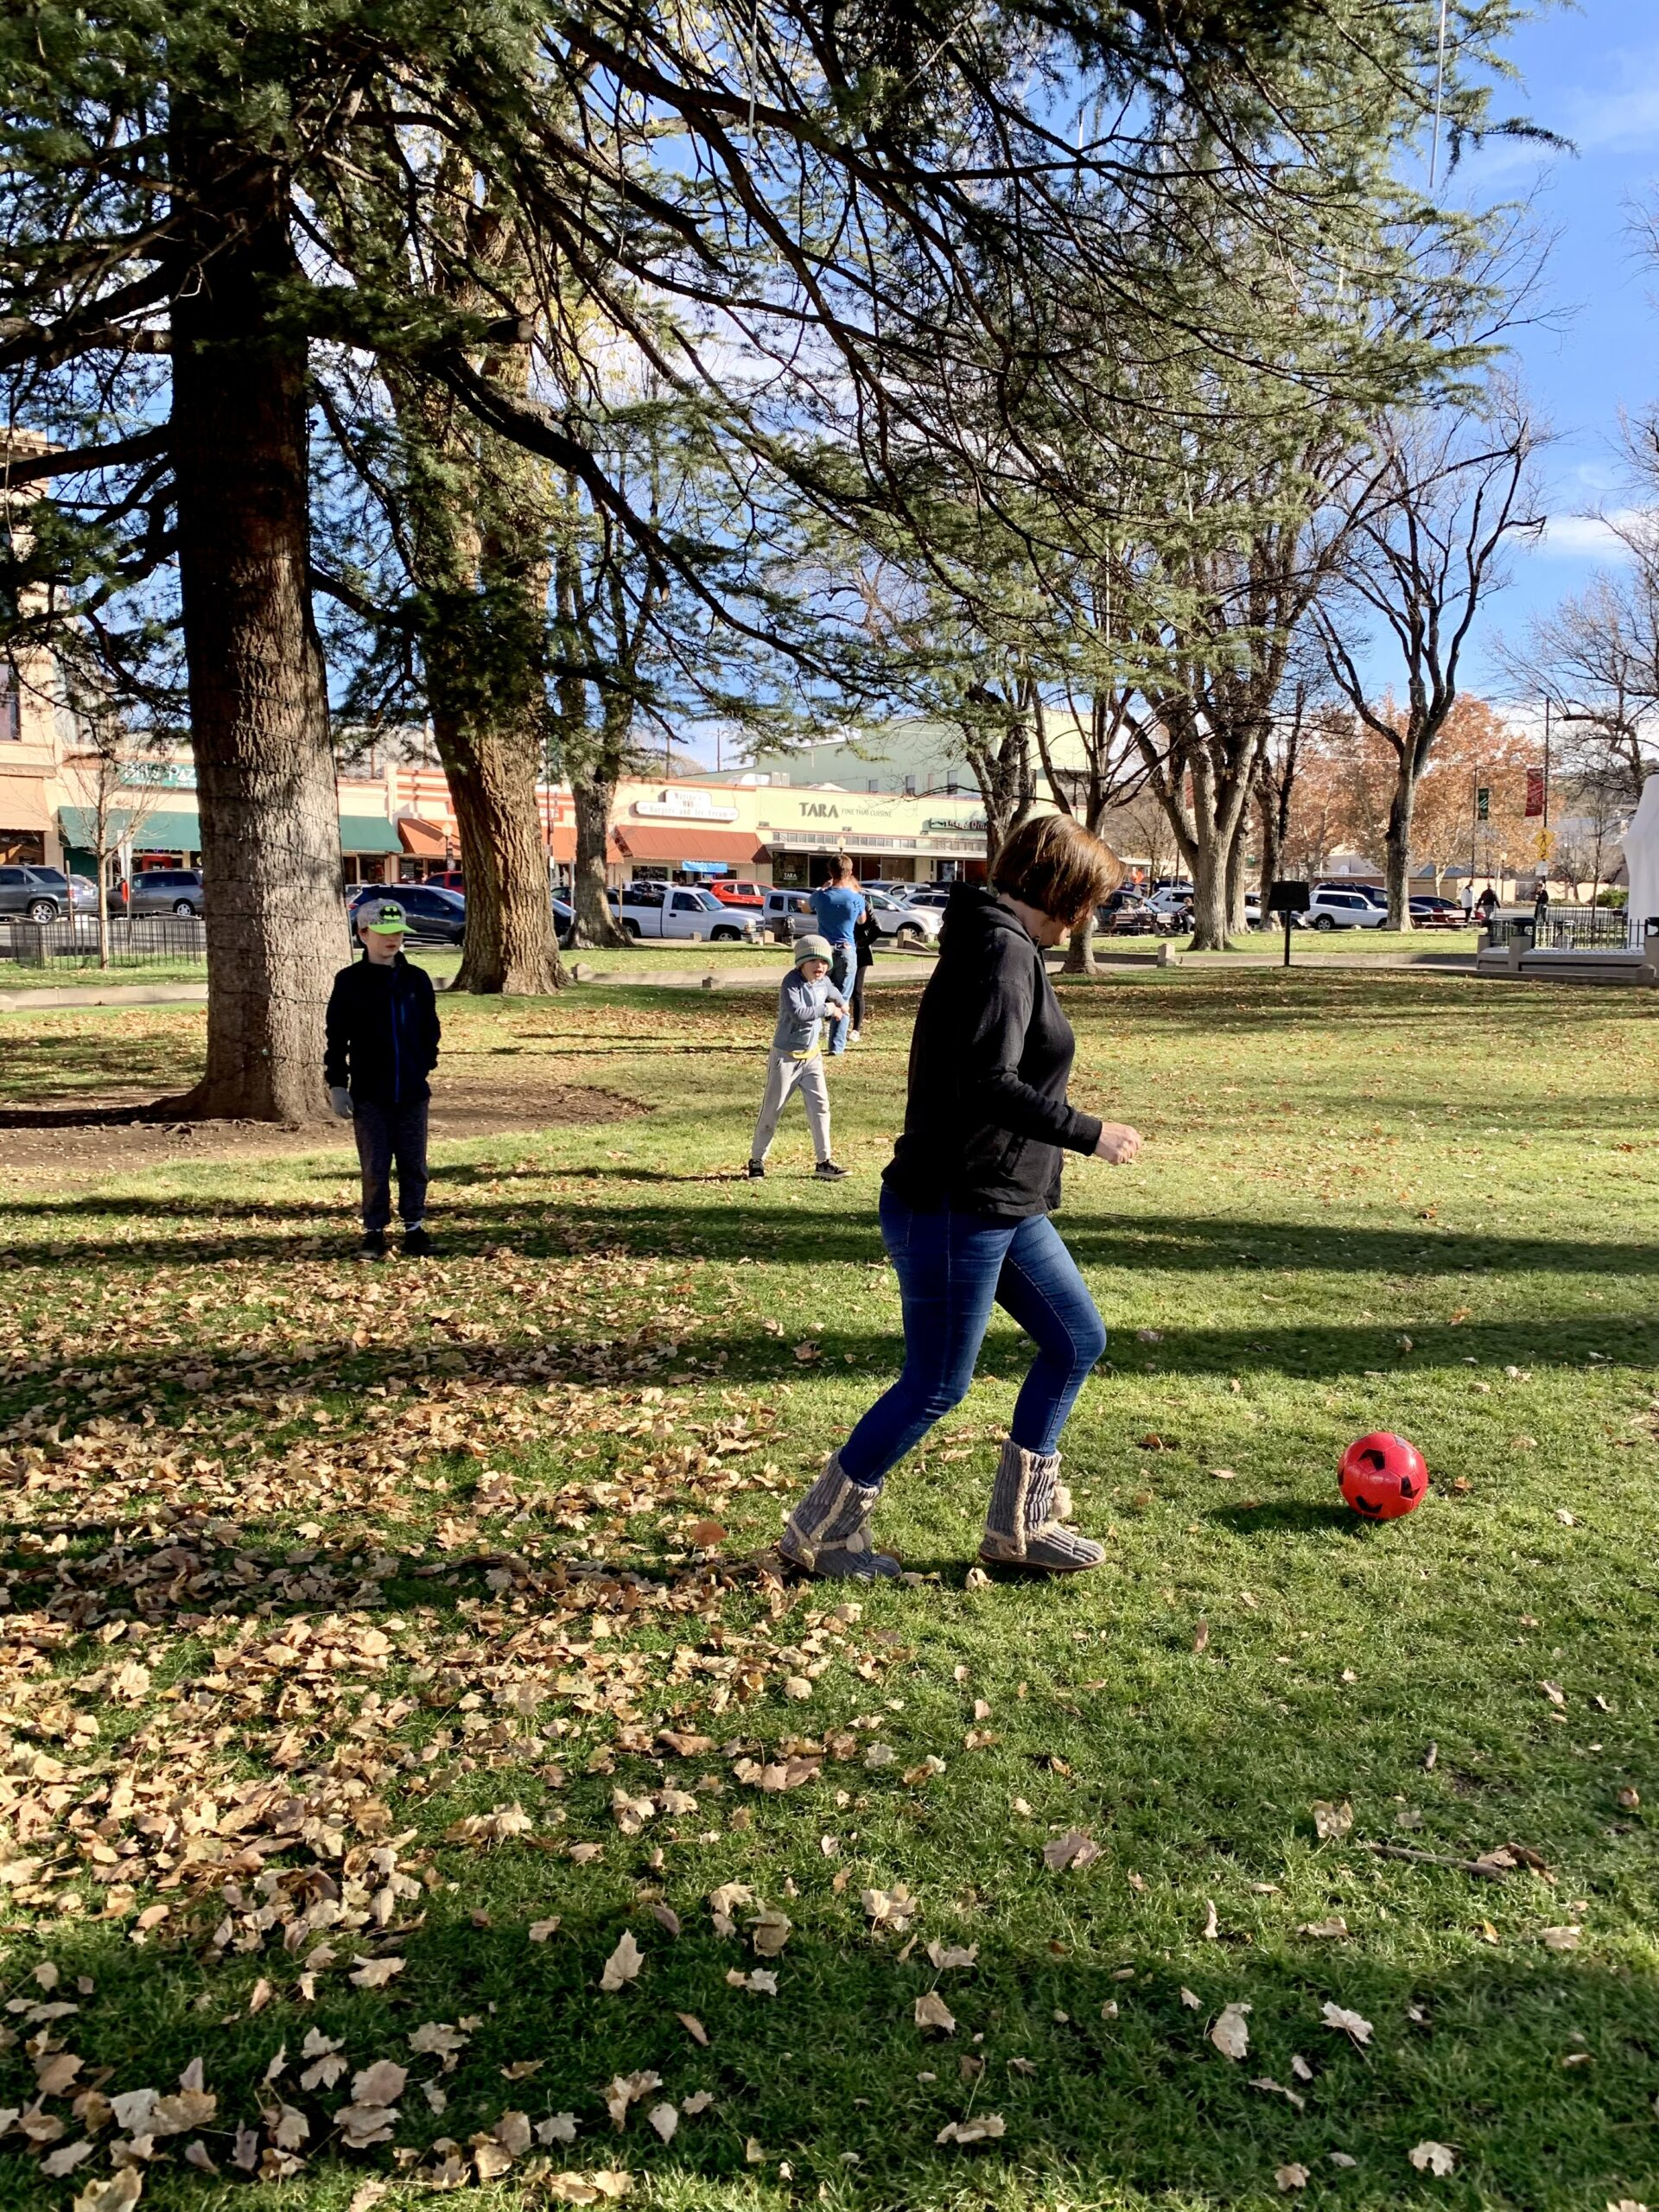 Things to do in Prescott AZ - Woman playing soccer with her children at the park in Courthouse Square